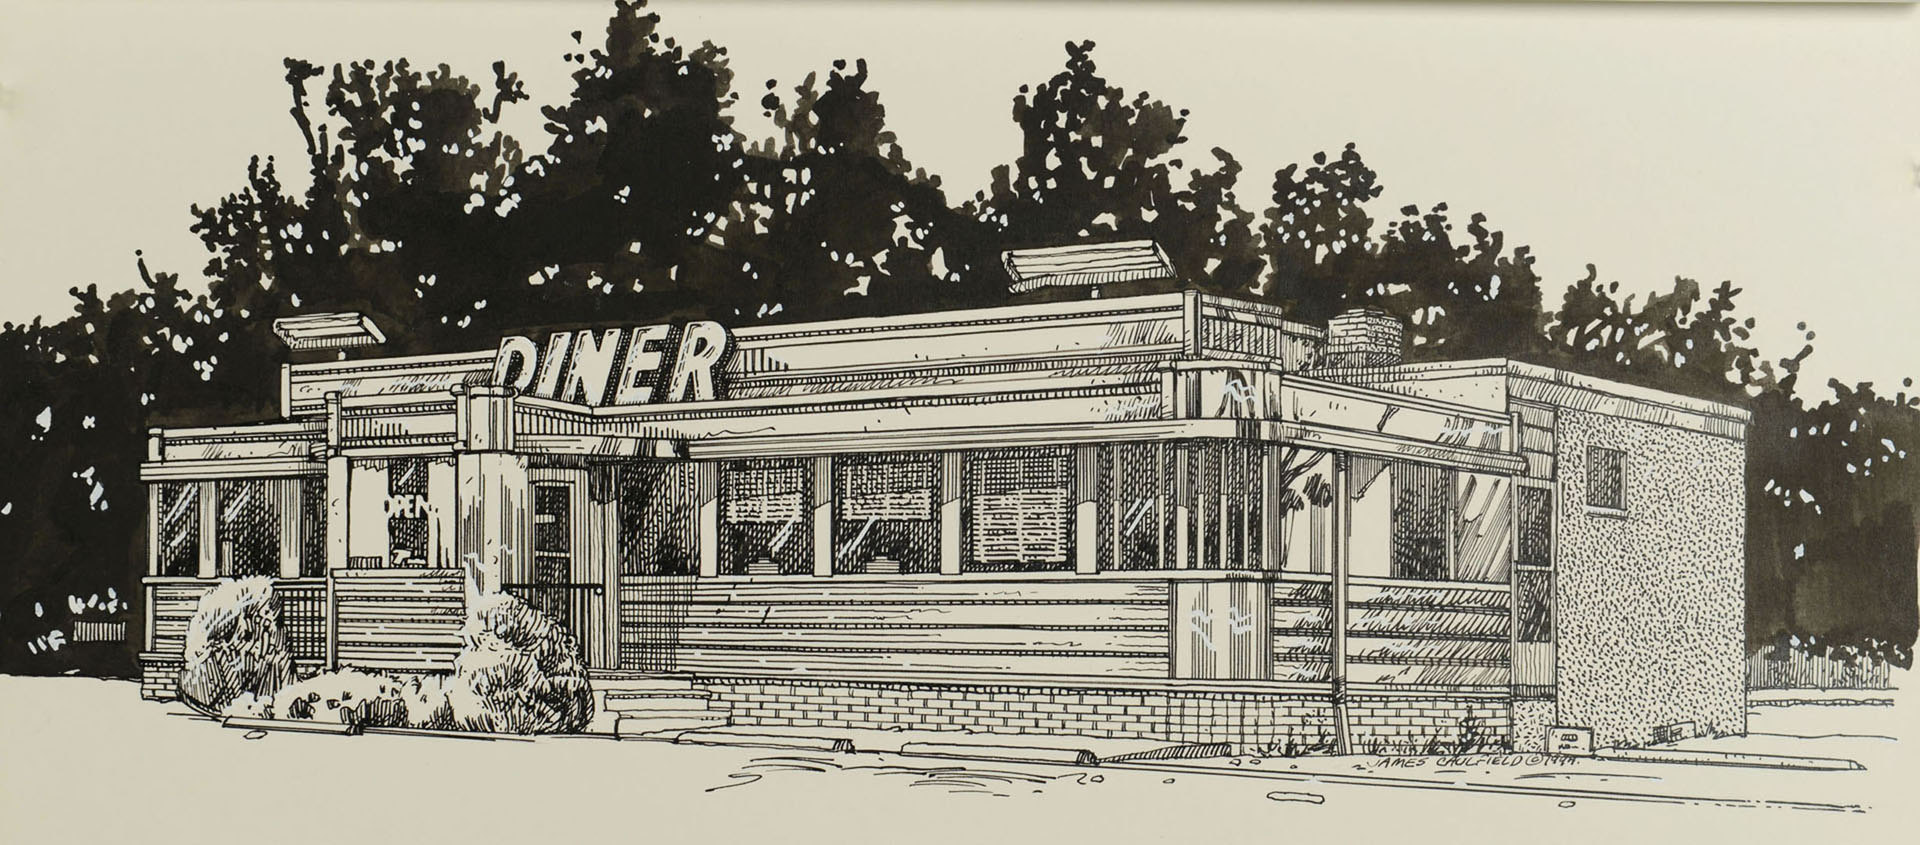 Lot 3088259: 7 Roadside Diner Works by James Caulfield